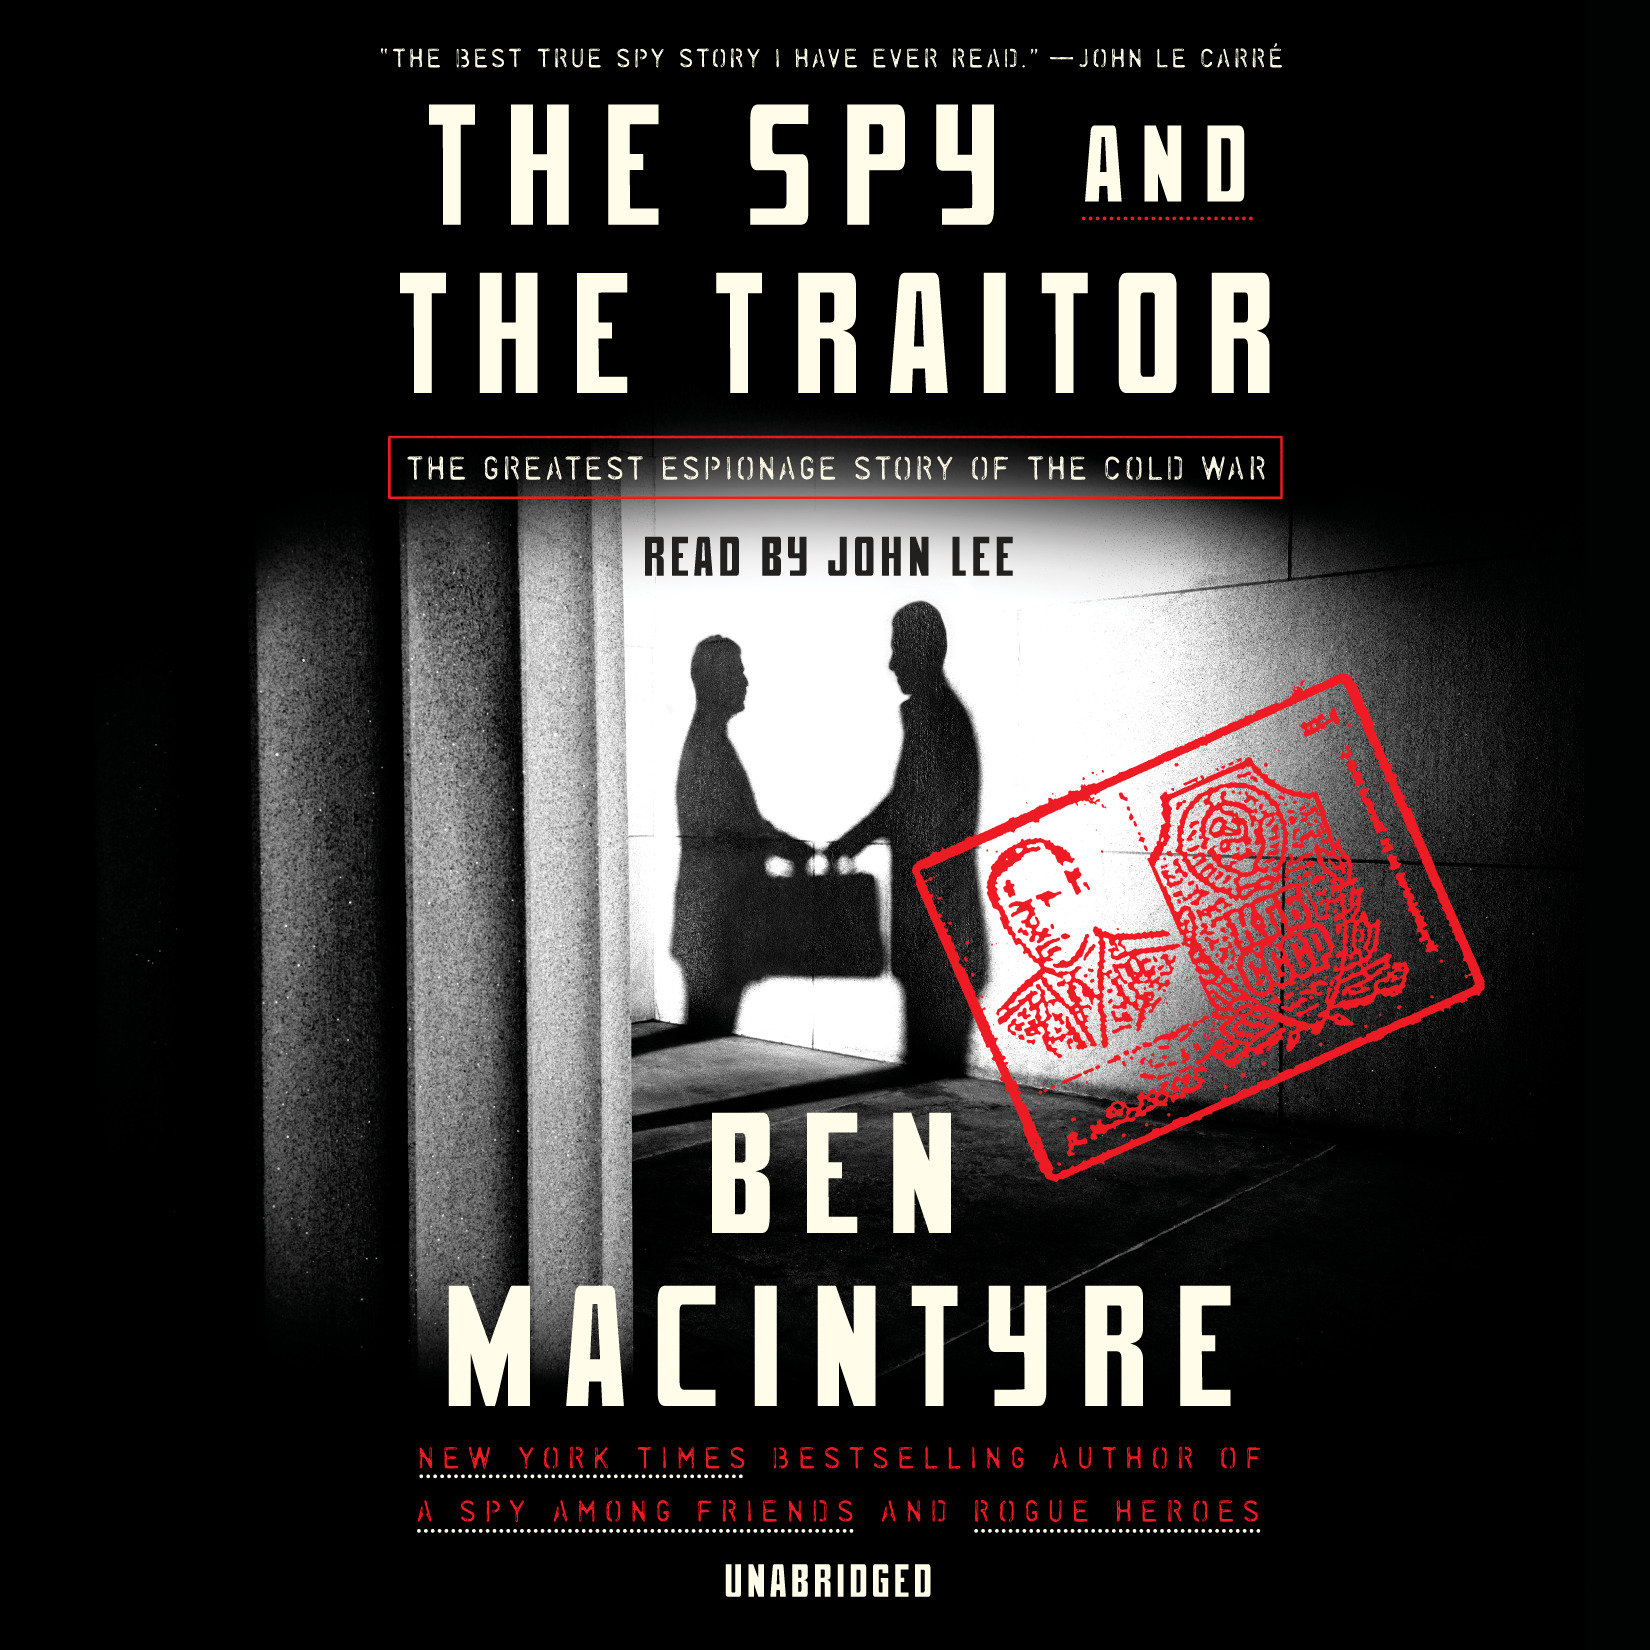 The Spy and the Traitor : The Greatest Espionage Story of the Cold War